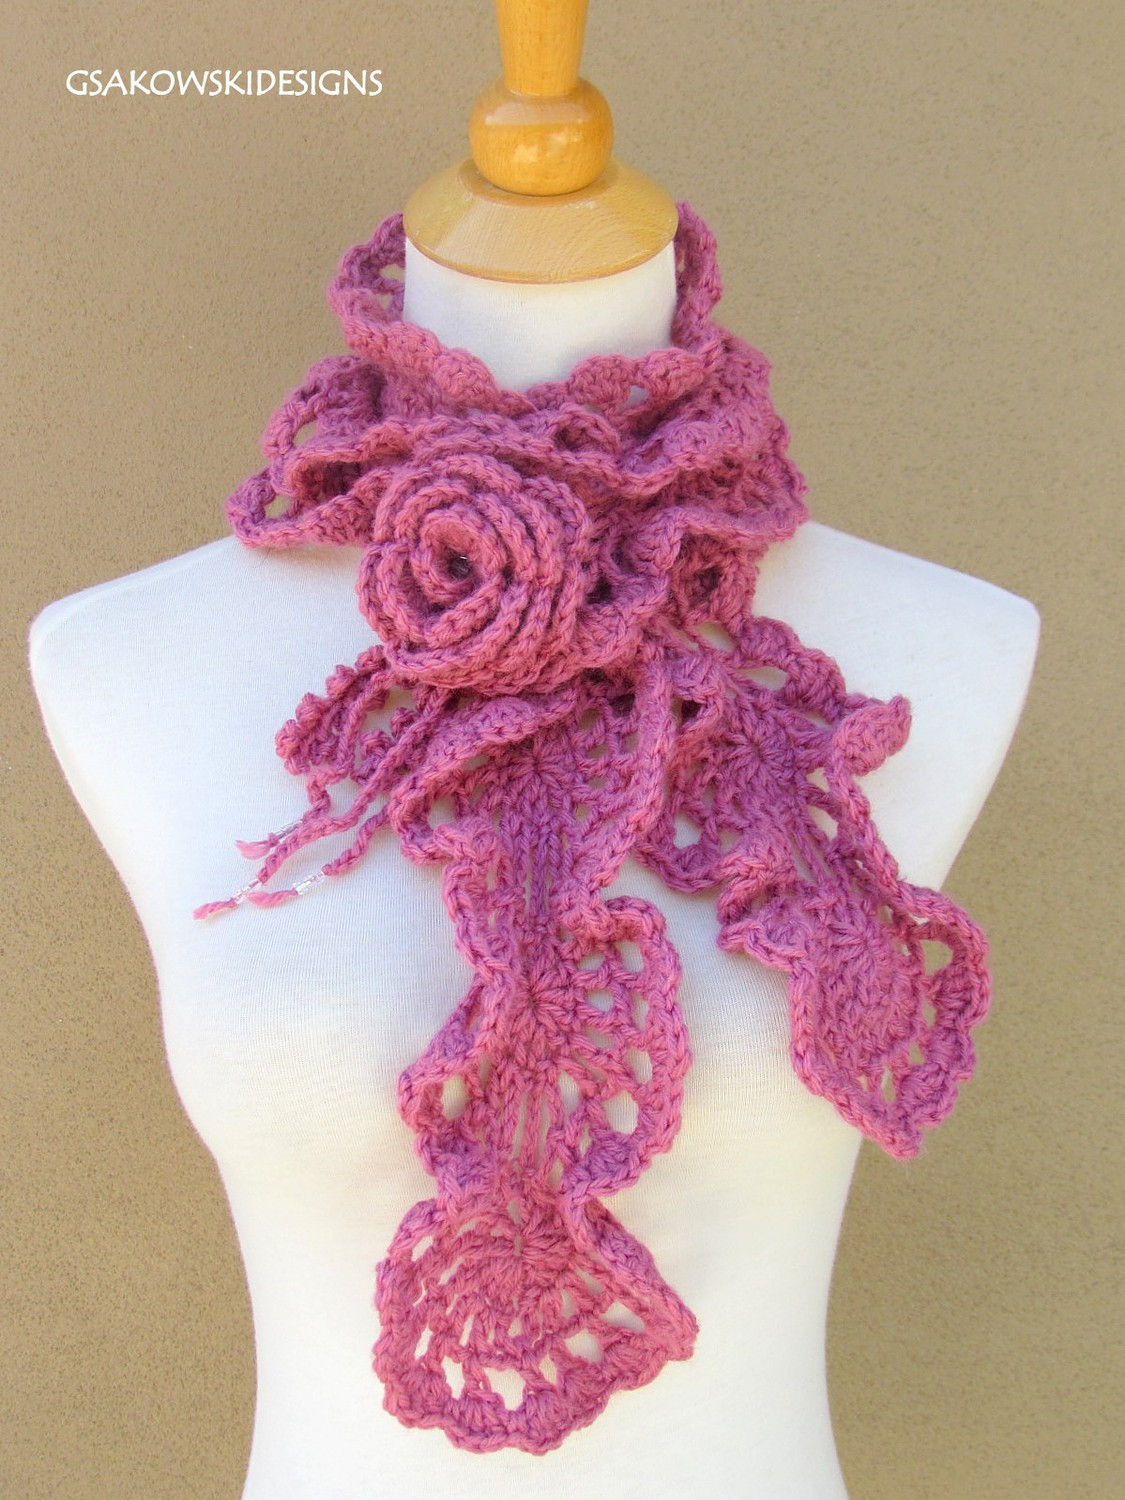 Awesome 43 Crocheting Patterns for Scarves Crochet Dreamz Alana Crochet Stitches for Scarves Of Gorgeous 48 Ideas Crochet Stitches for Scarves